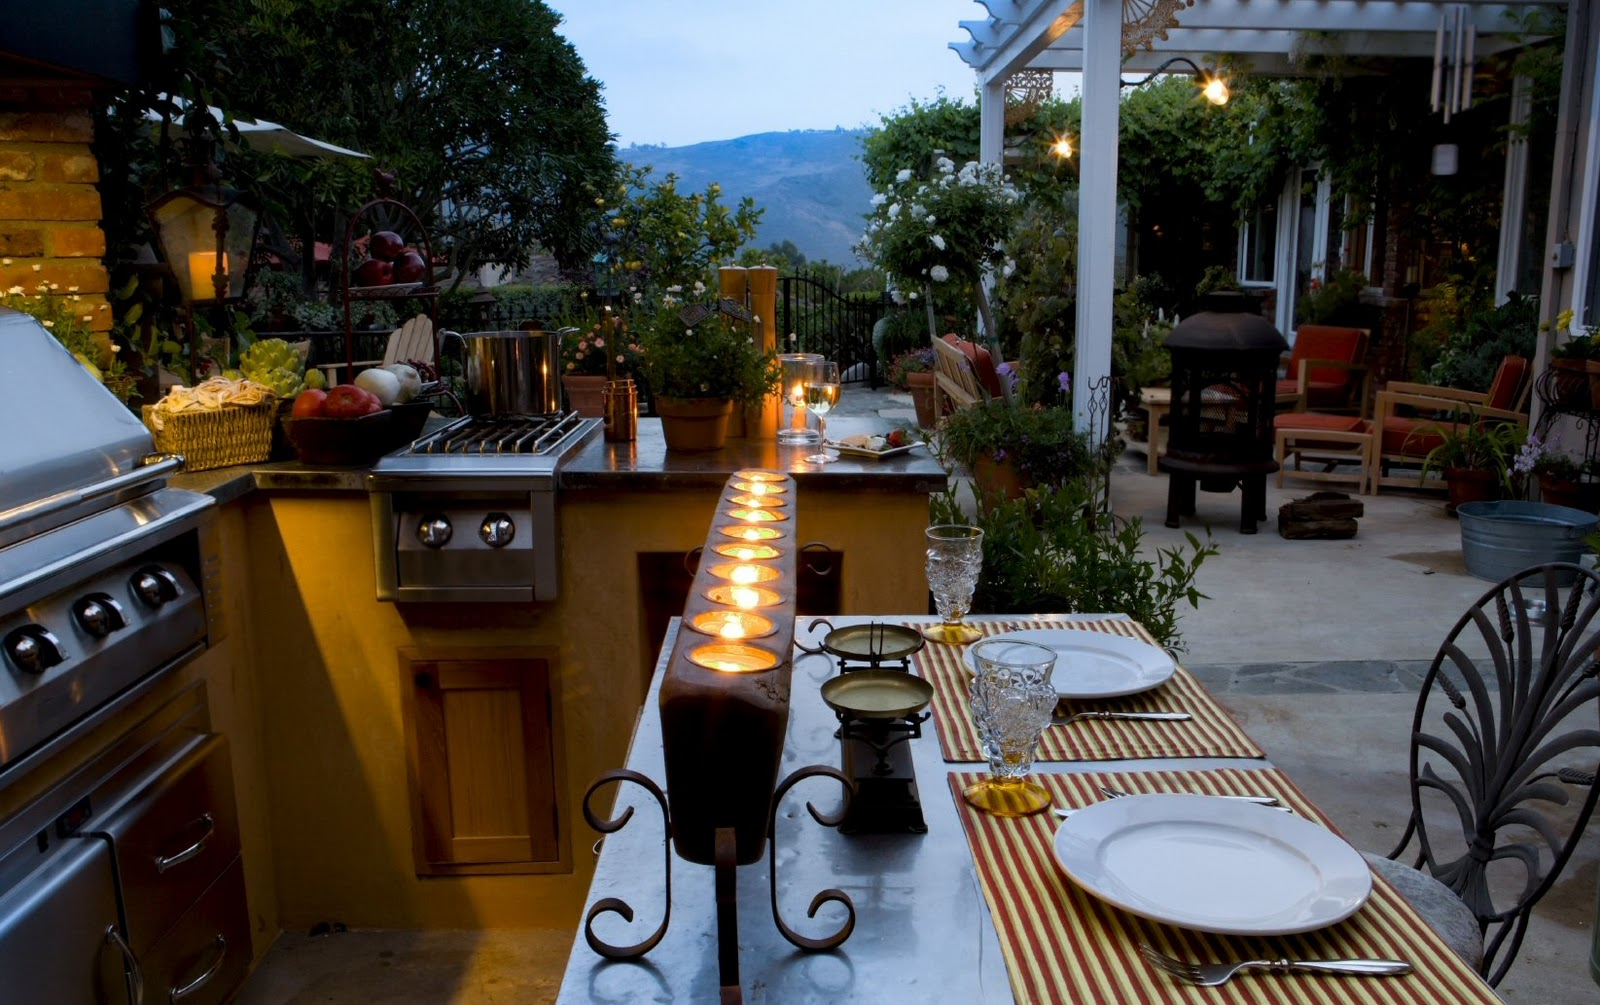 Creatively Placing Candles In An Outdoor Space Can Make Any Garden Room  Inviting And Relaxing. It Is Recommended That You Use Either Unscented  Candles Or An ...